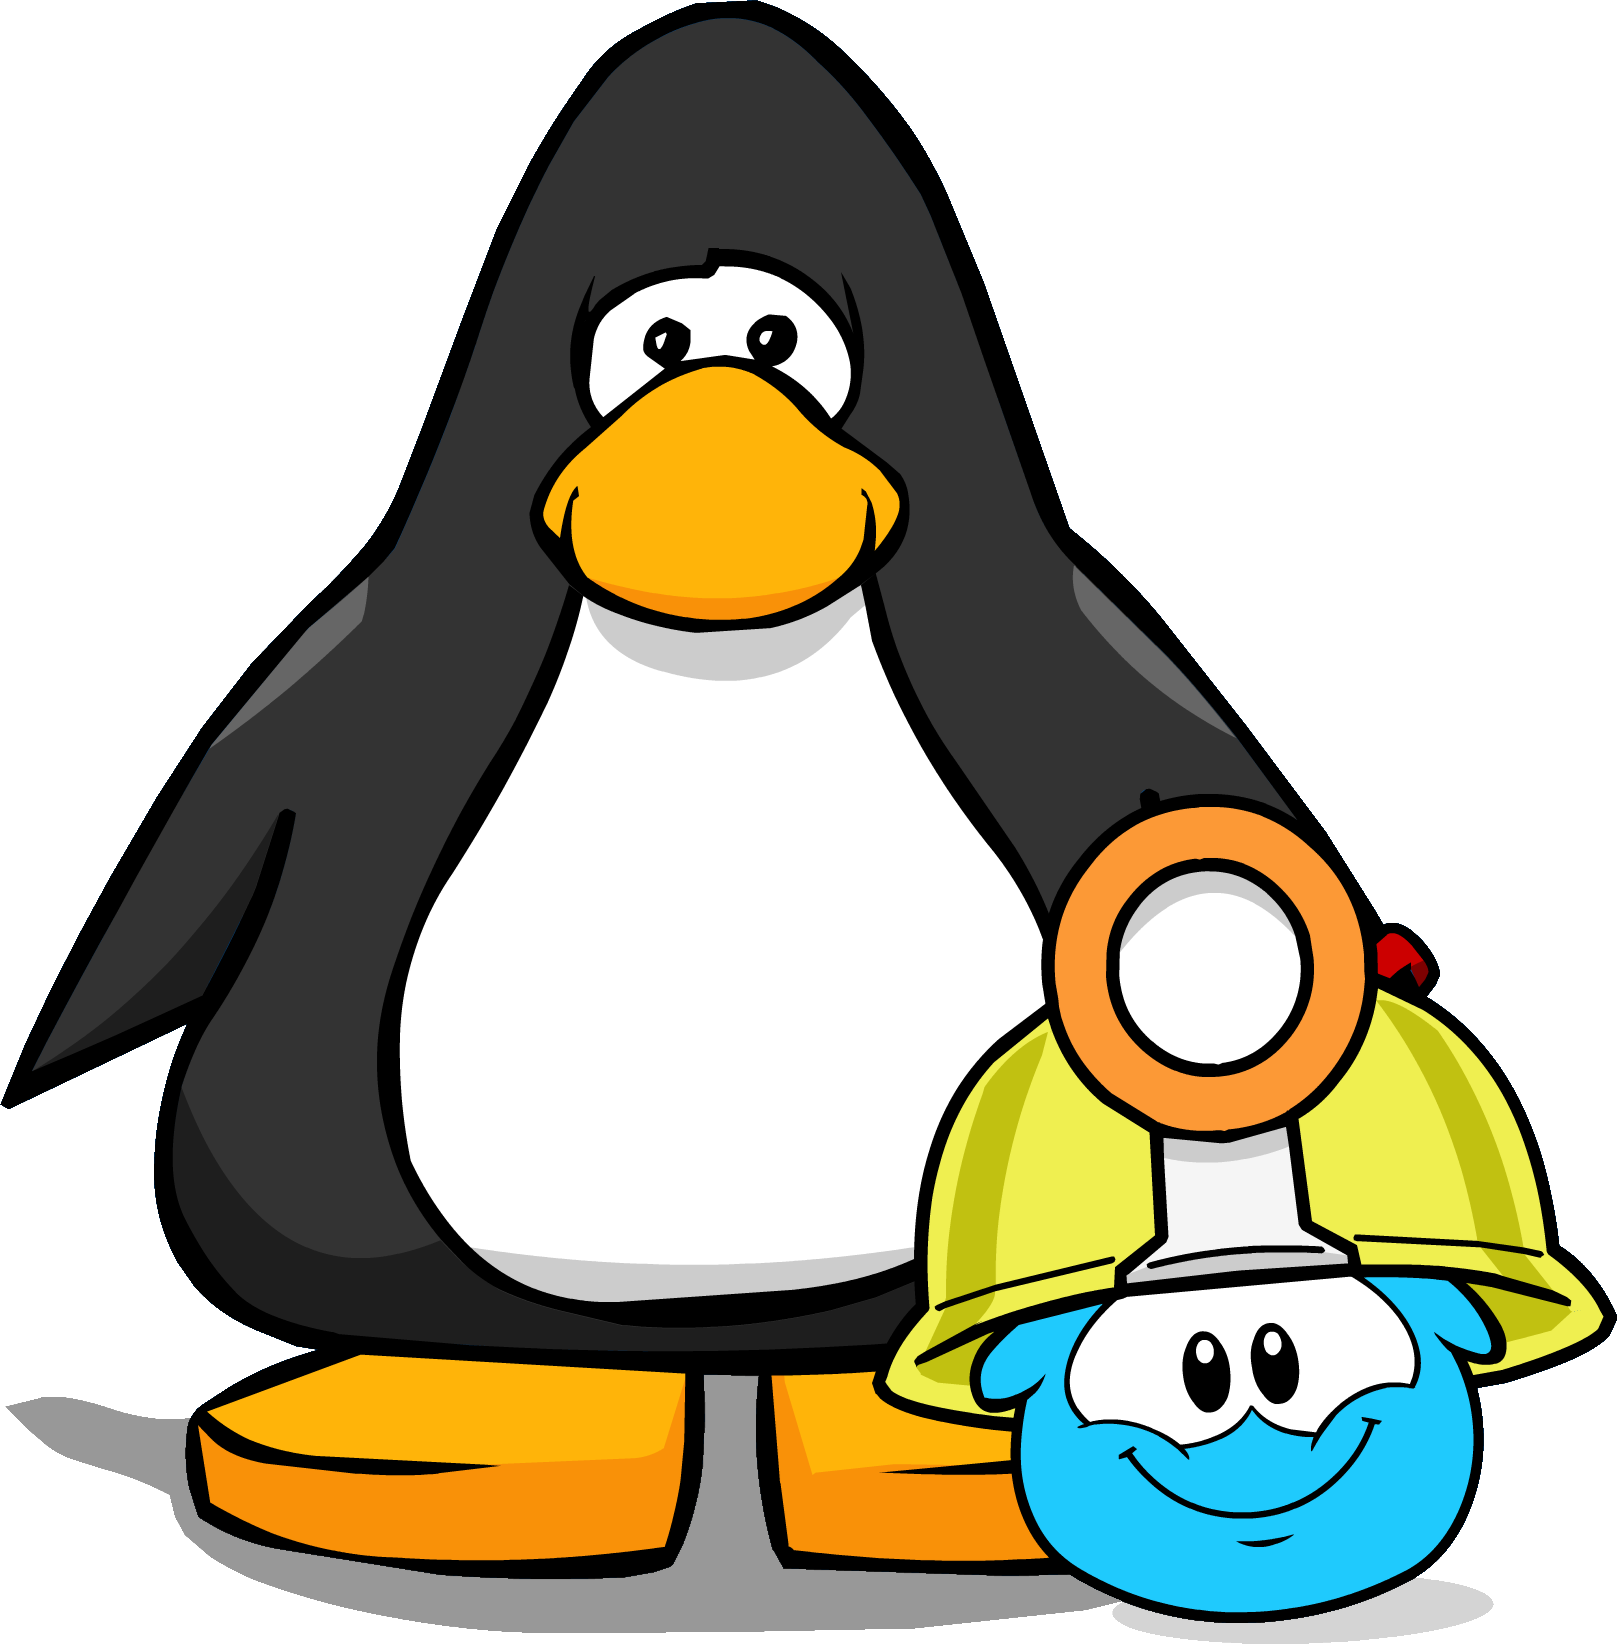 File:Mining Helmet (Puffle Hat) on Player Card.png